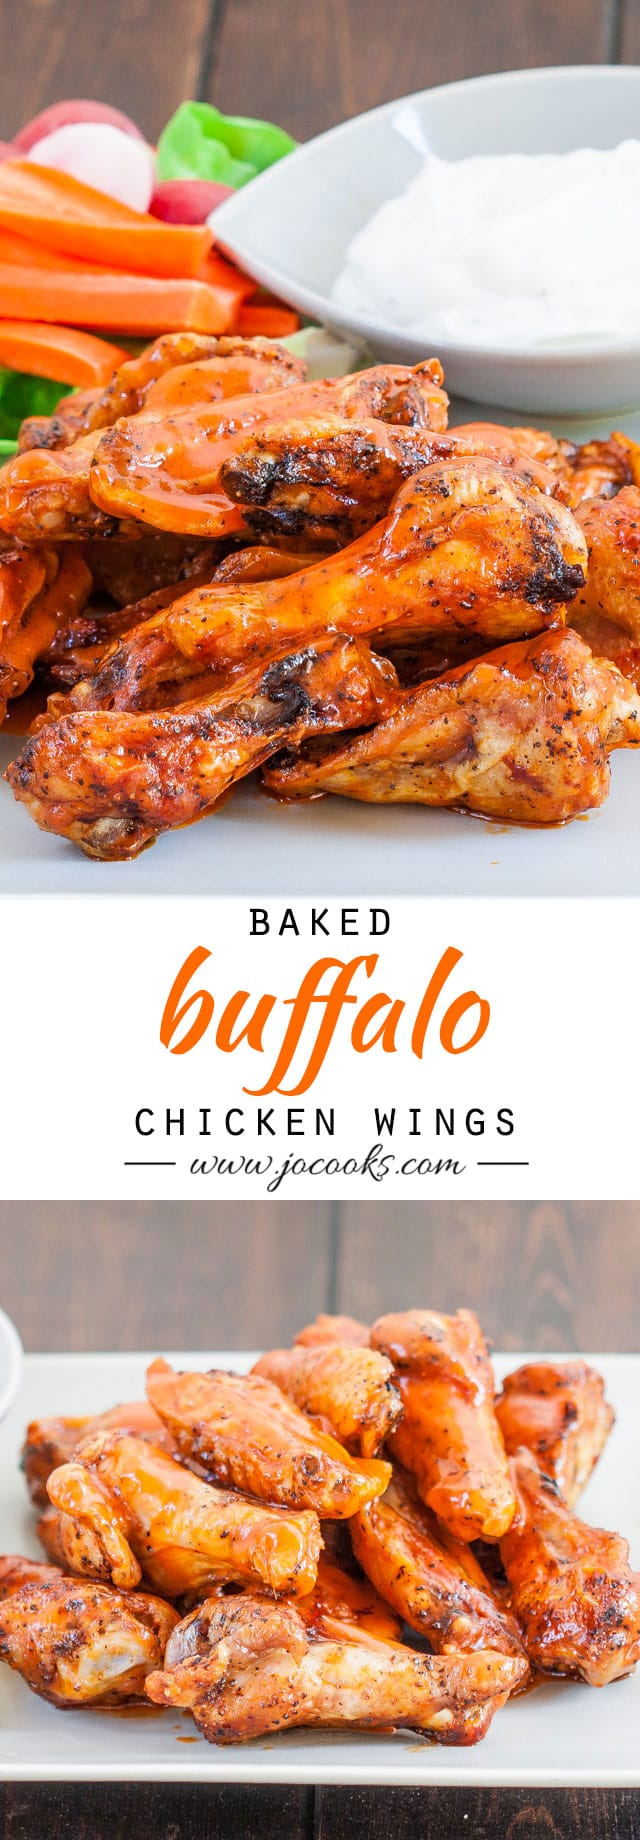 baked-buffalo-chicken-wings-collage